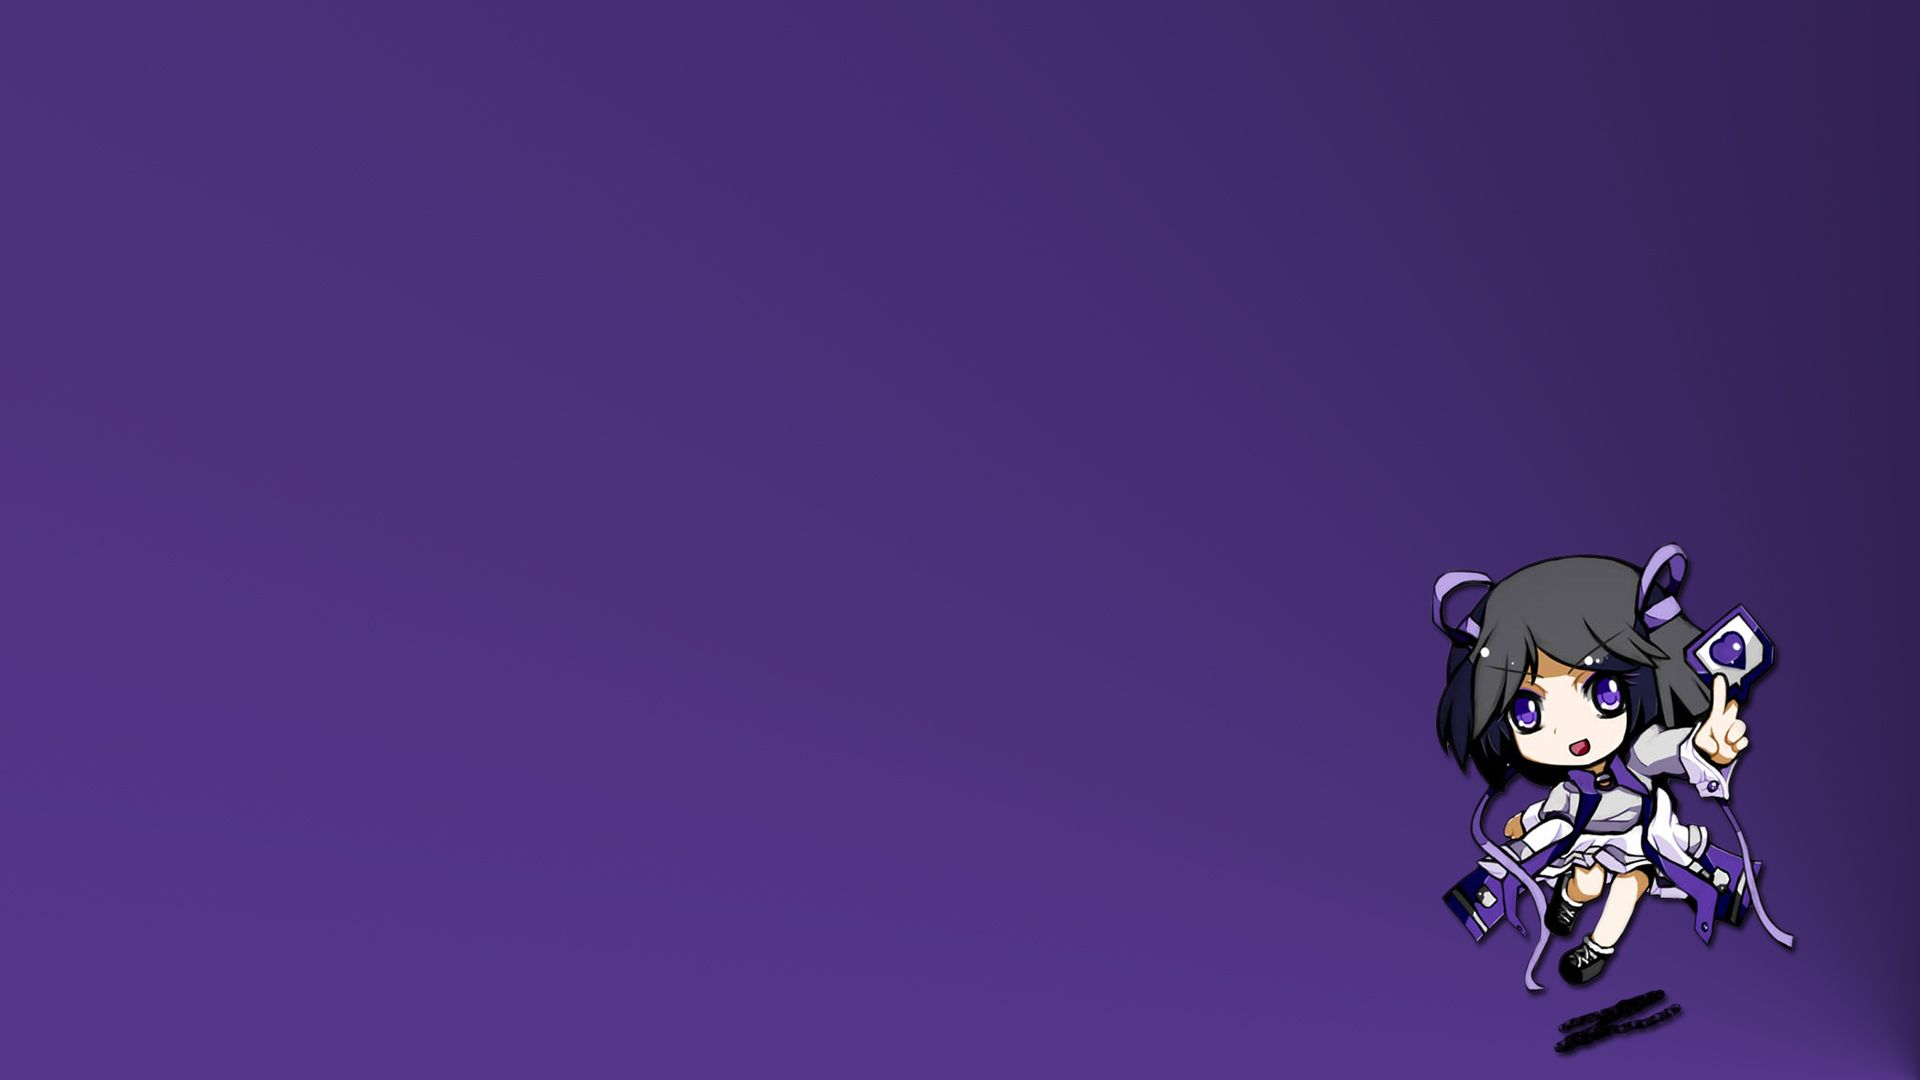 Awesome Twitch Wallpapers Top Free Awesome Twitch Backgrounds